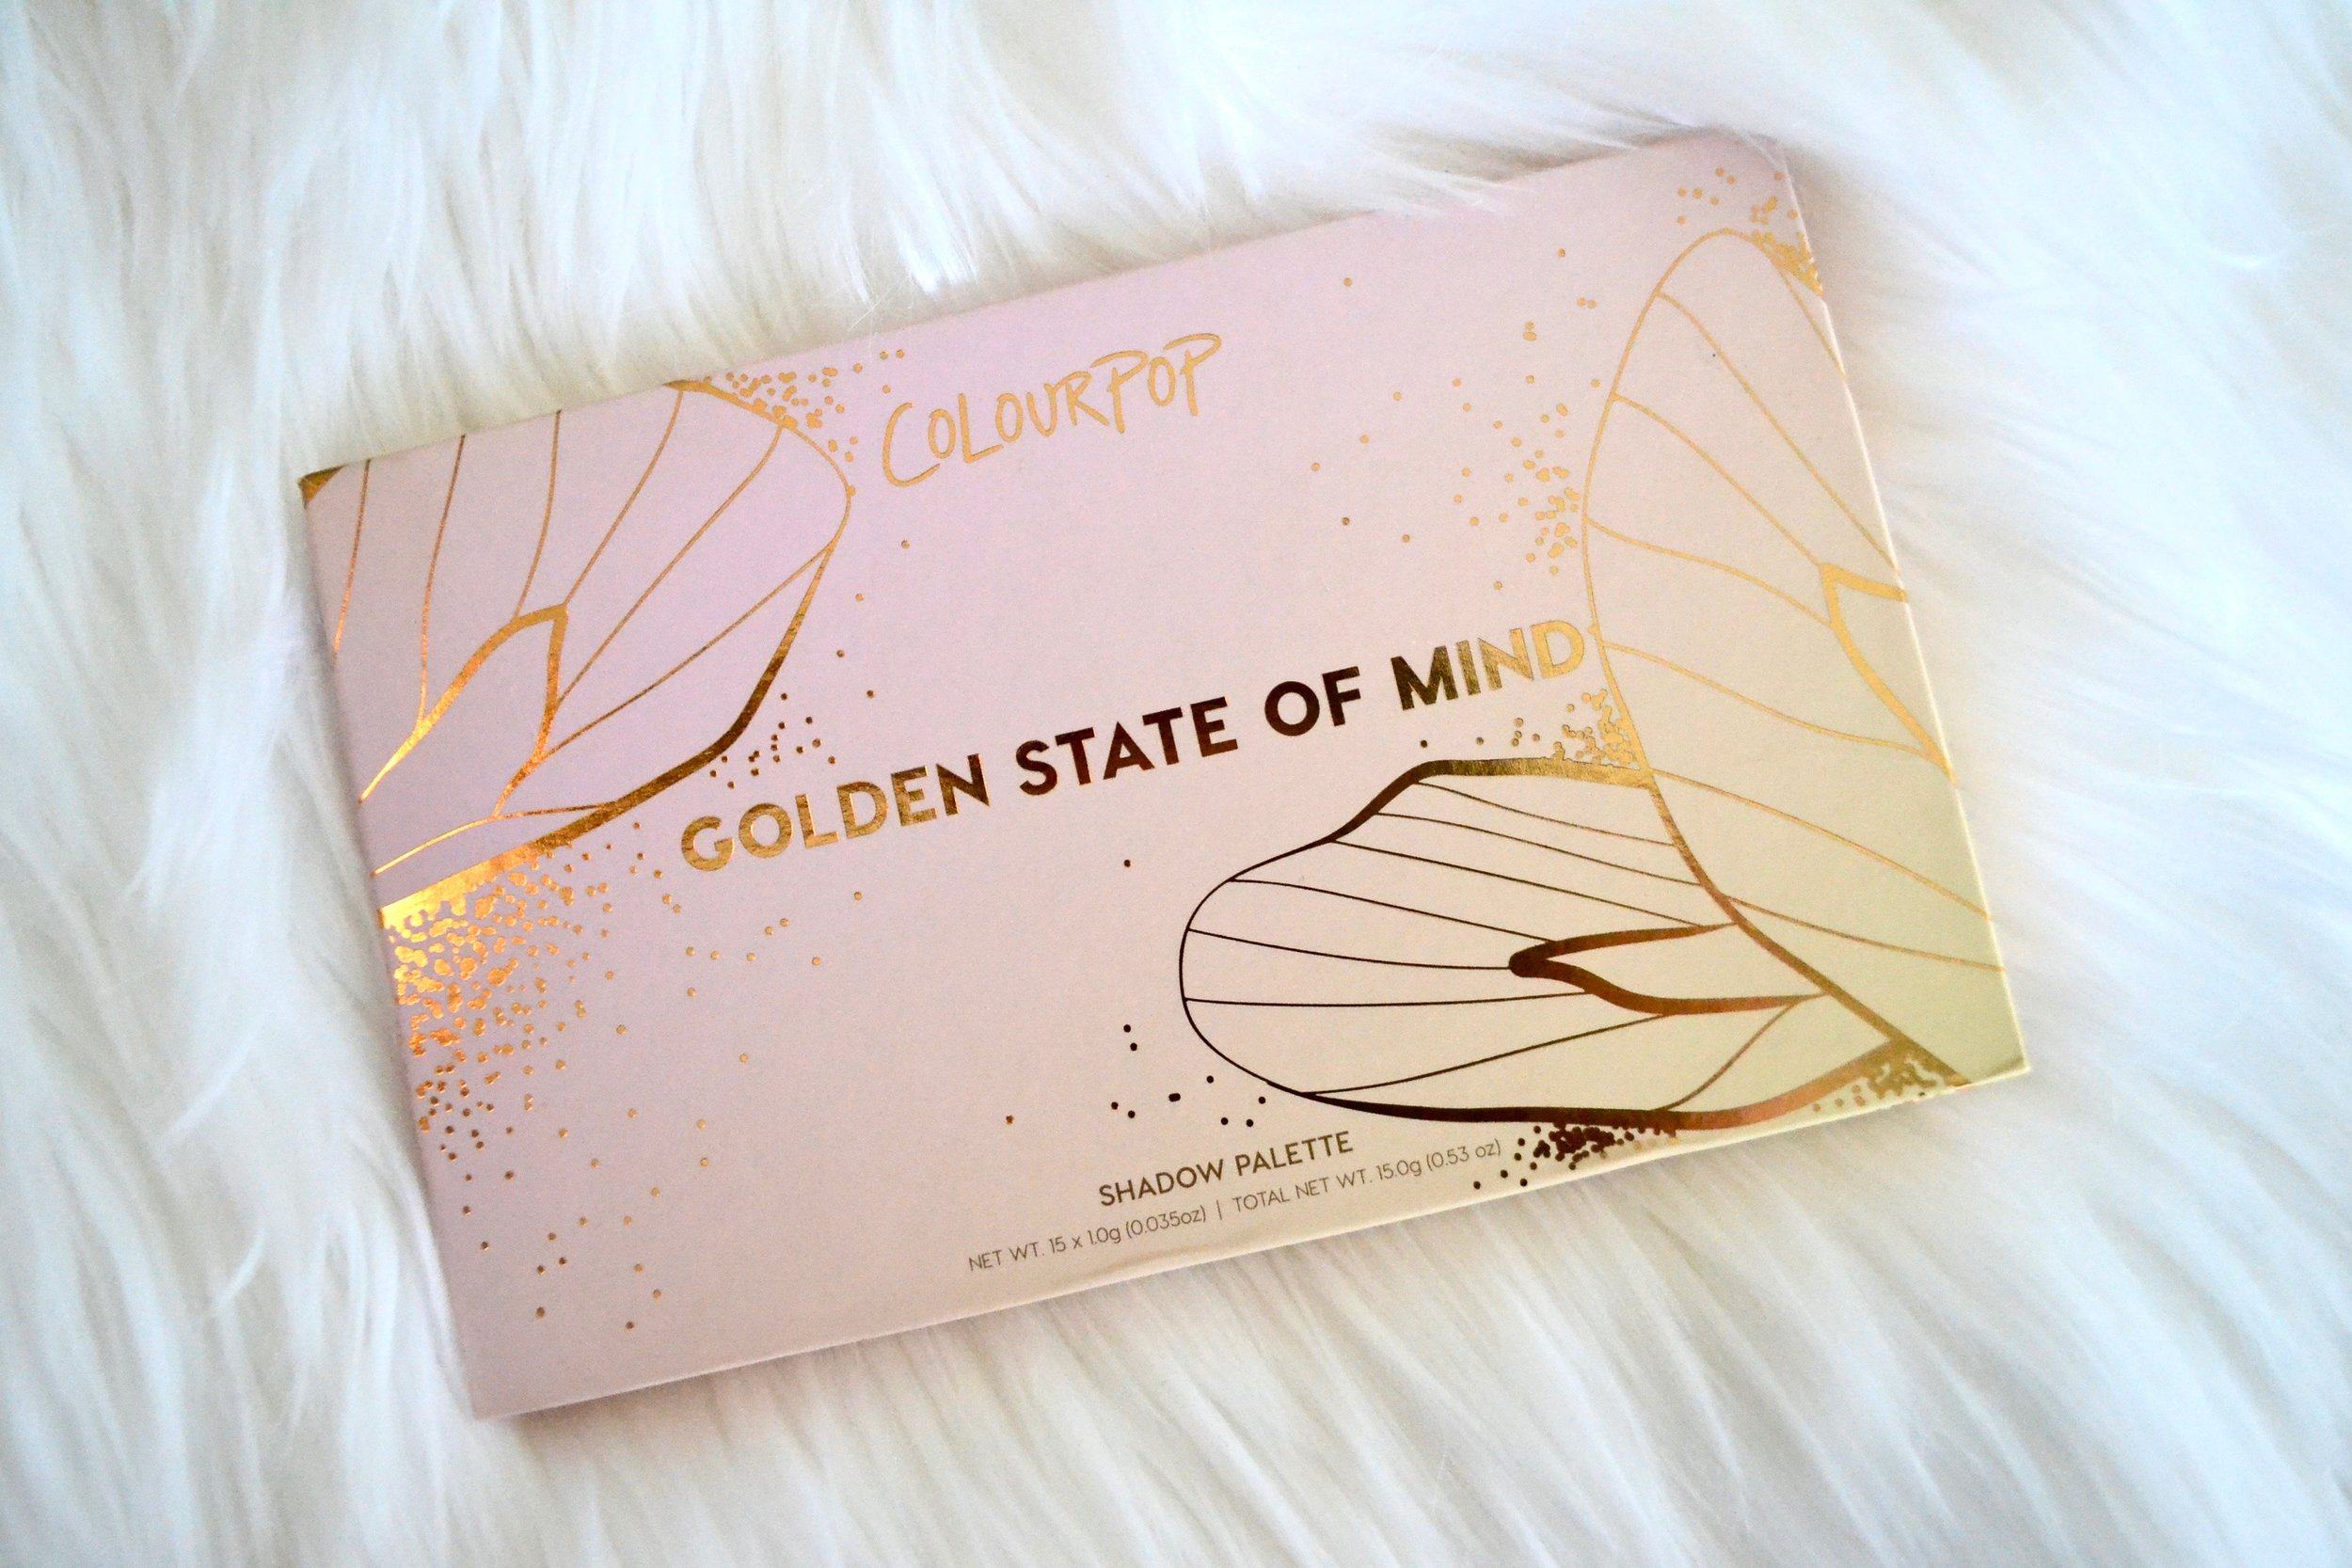 ColourPop Cosmetics Golden State of Mind Palette - Review